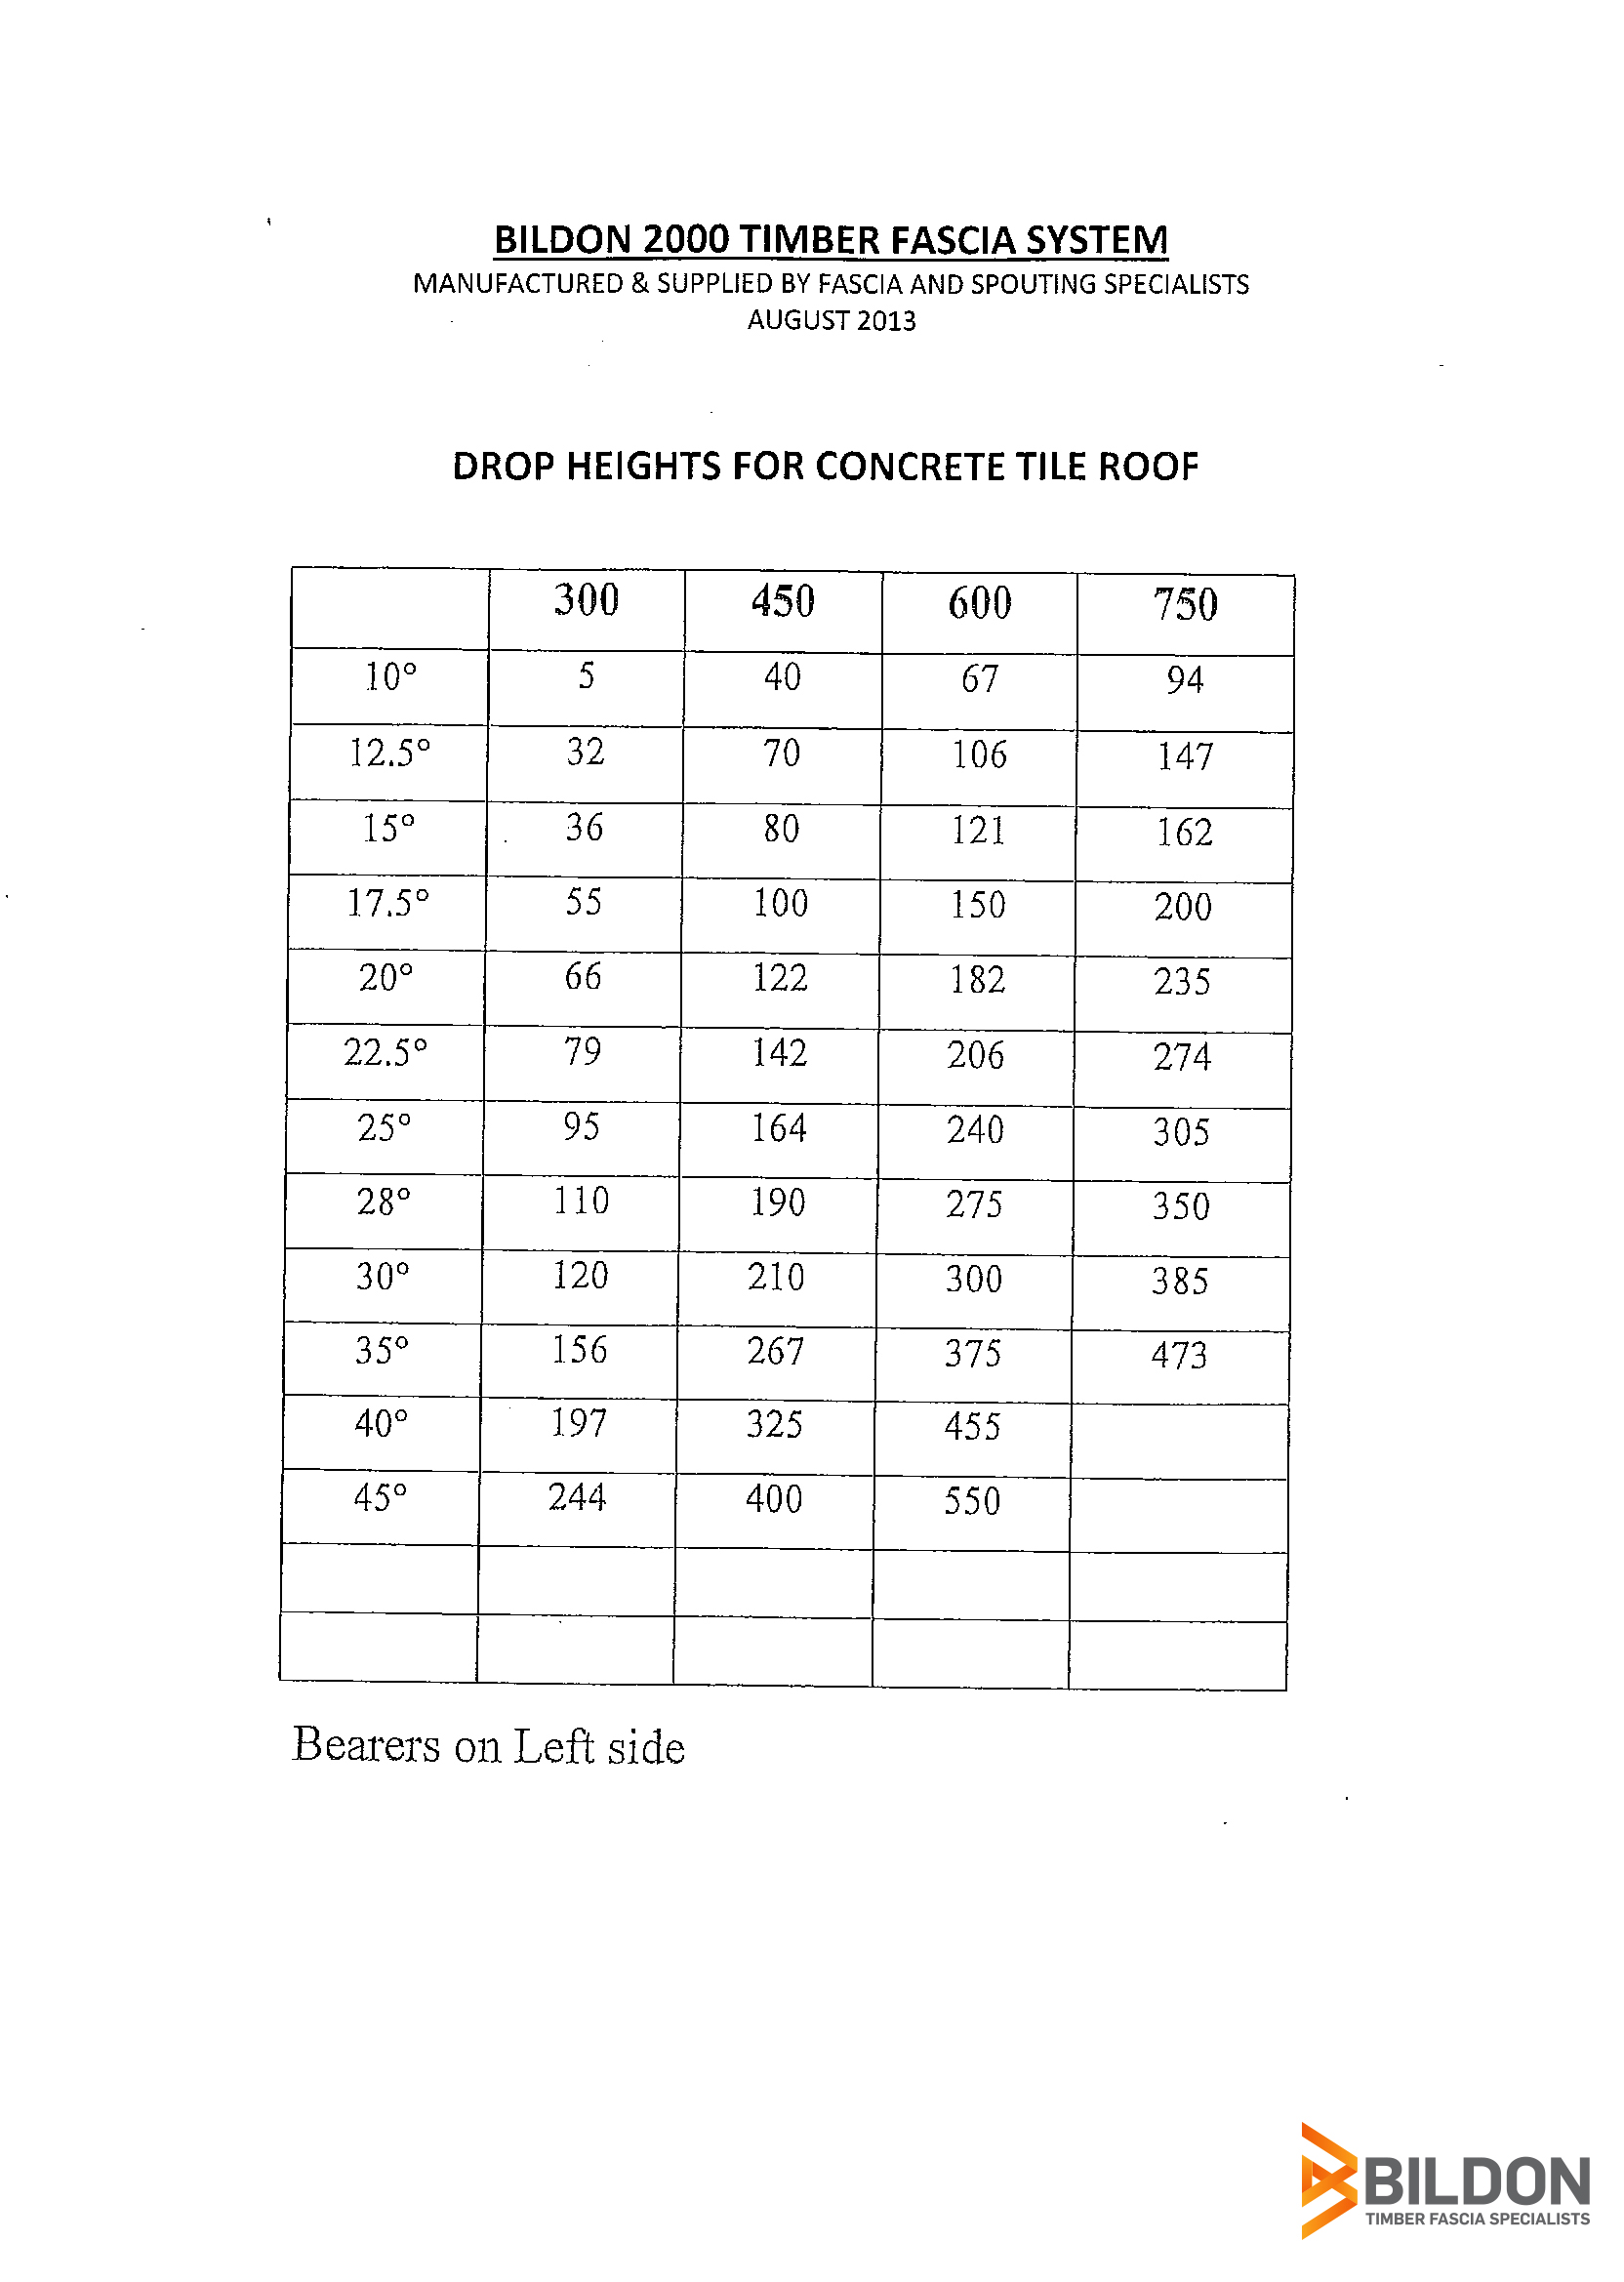 Drop Heights for Concrete Tile Roof.jpg